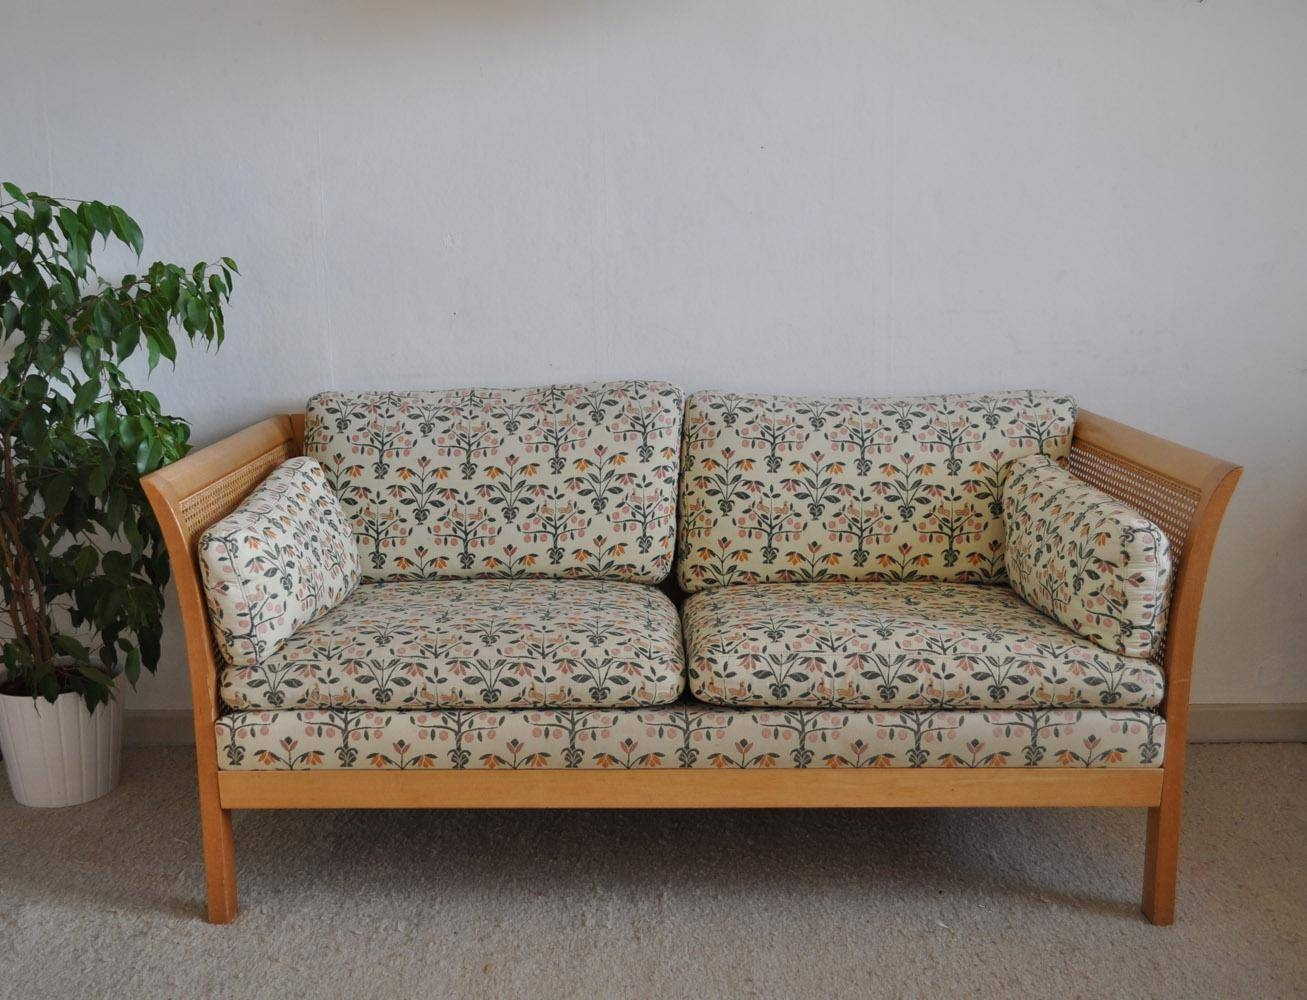 Vintage Rattan Two-Seater Sofa From Arne Norell For Sale At Pamono with regard to Two Seater Chairs (Image 27 of 30)